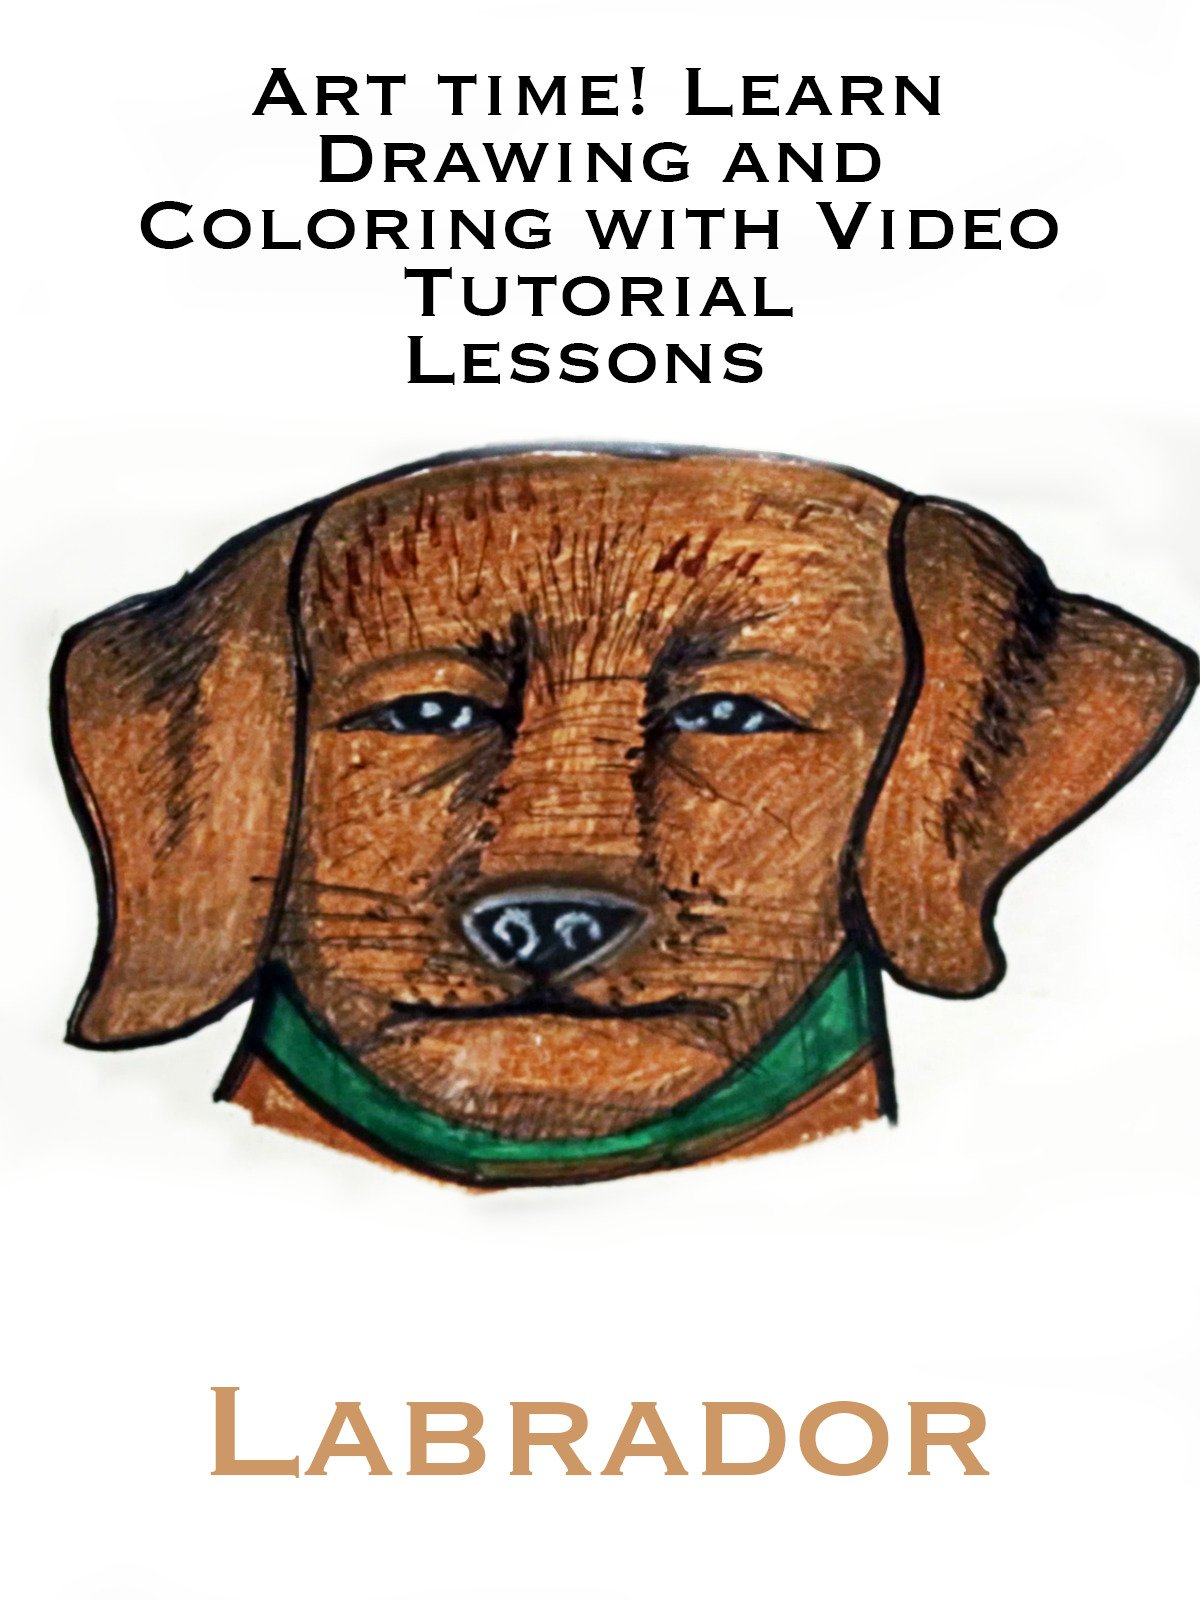 Art Time! Learn Drawing and Coloring with Video Tutorial Lessons Labrador